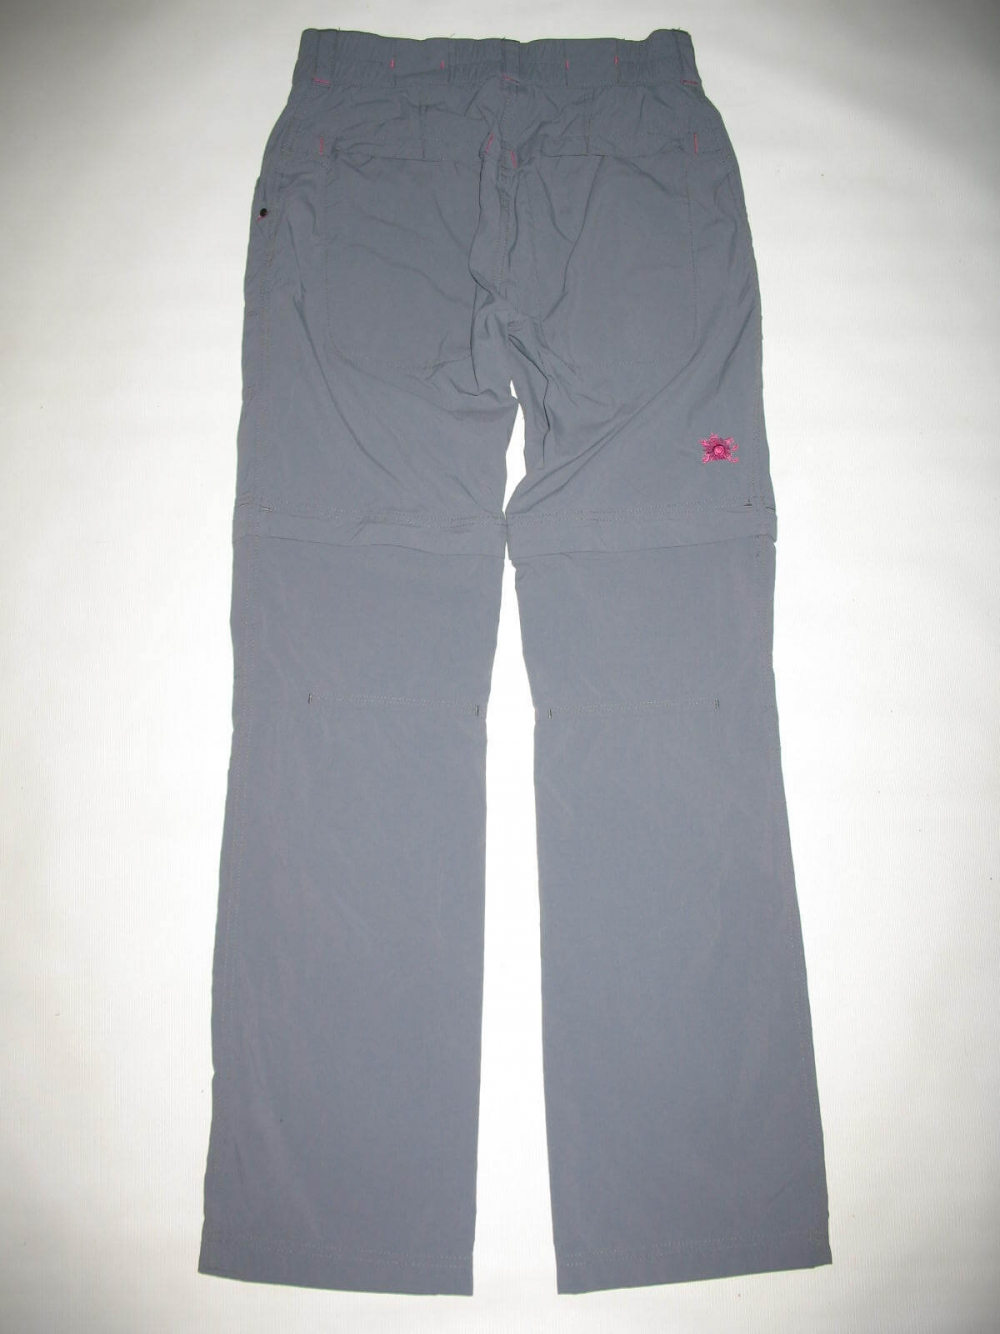 Штаны SALEWA nola dry 2in1 pants lady (размер XS) - 1